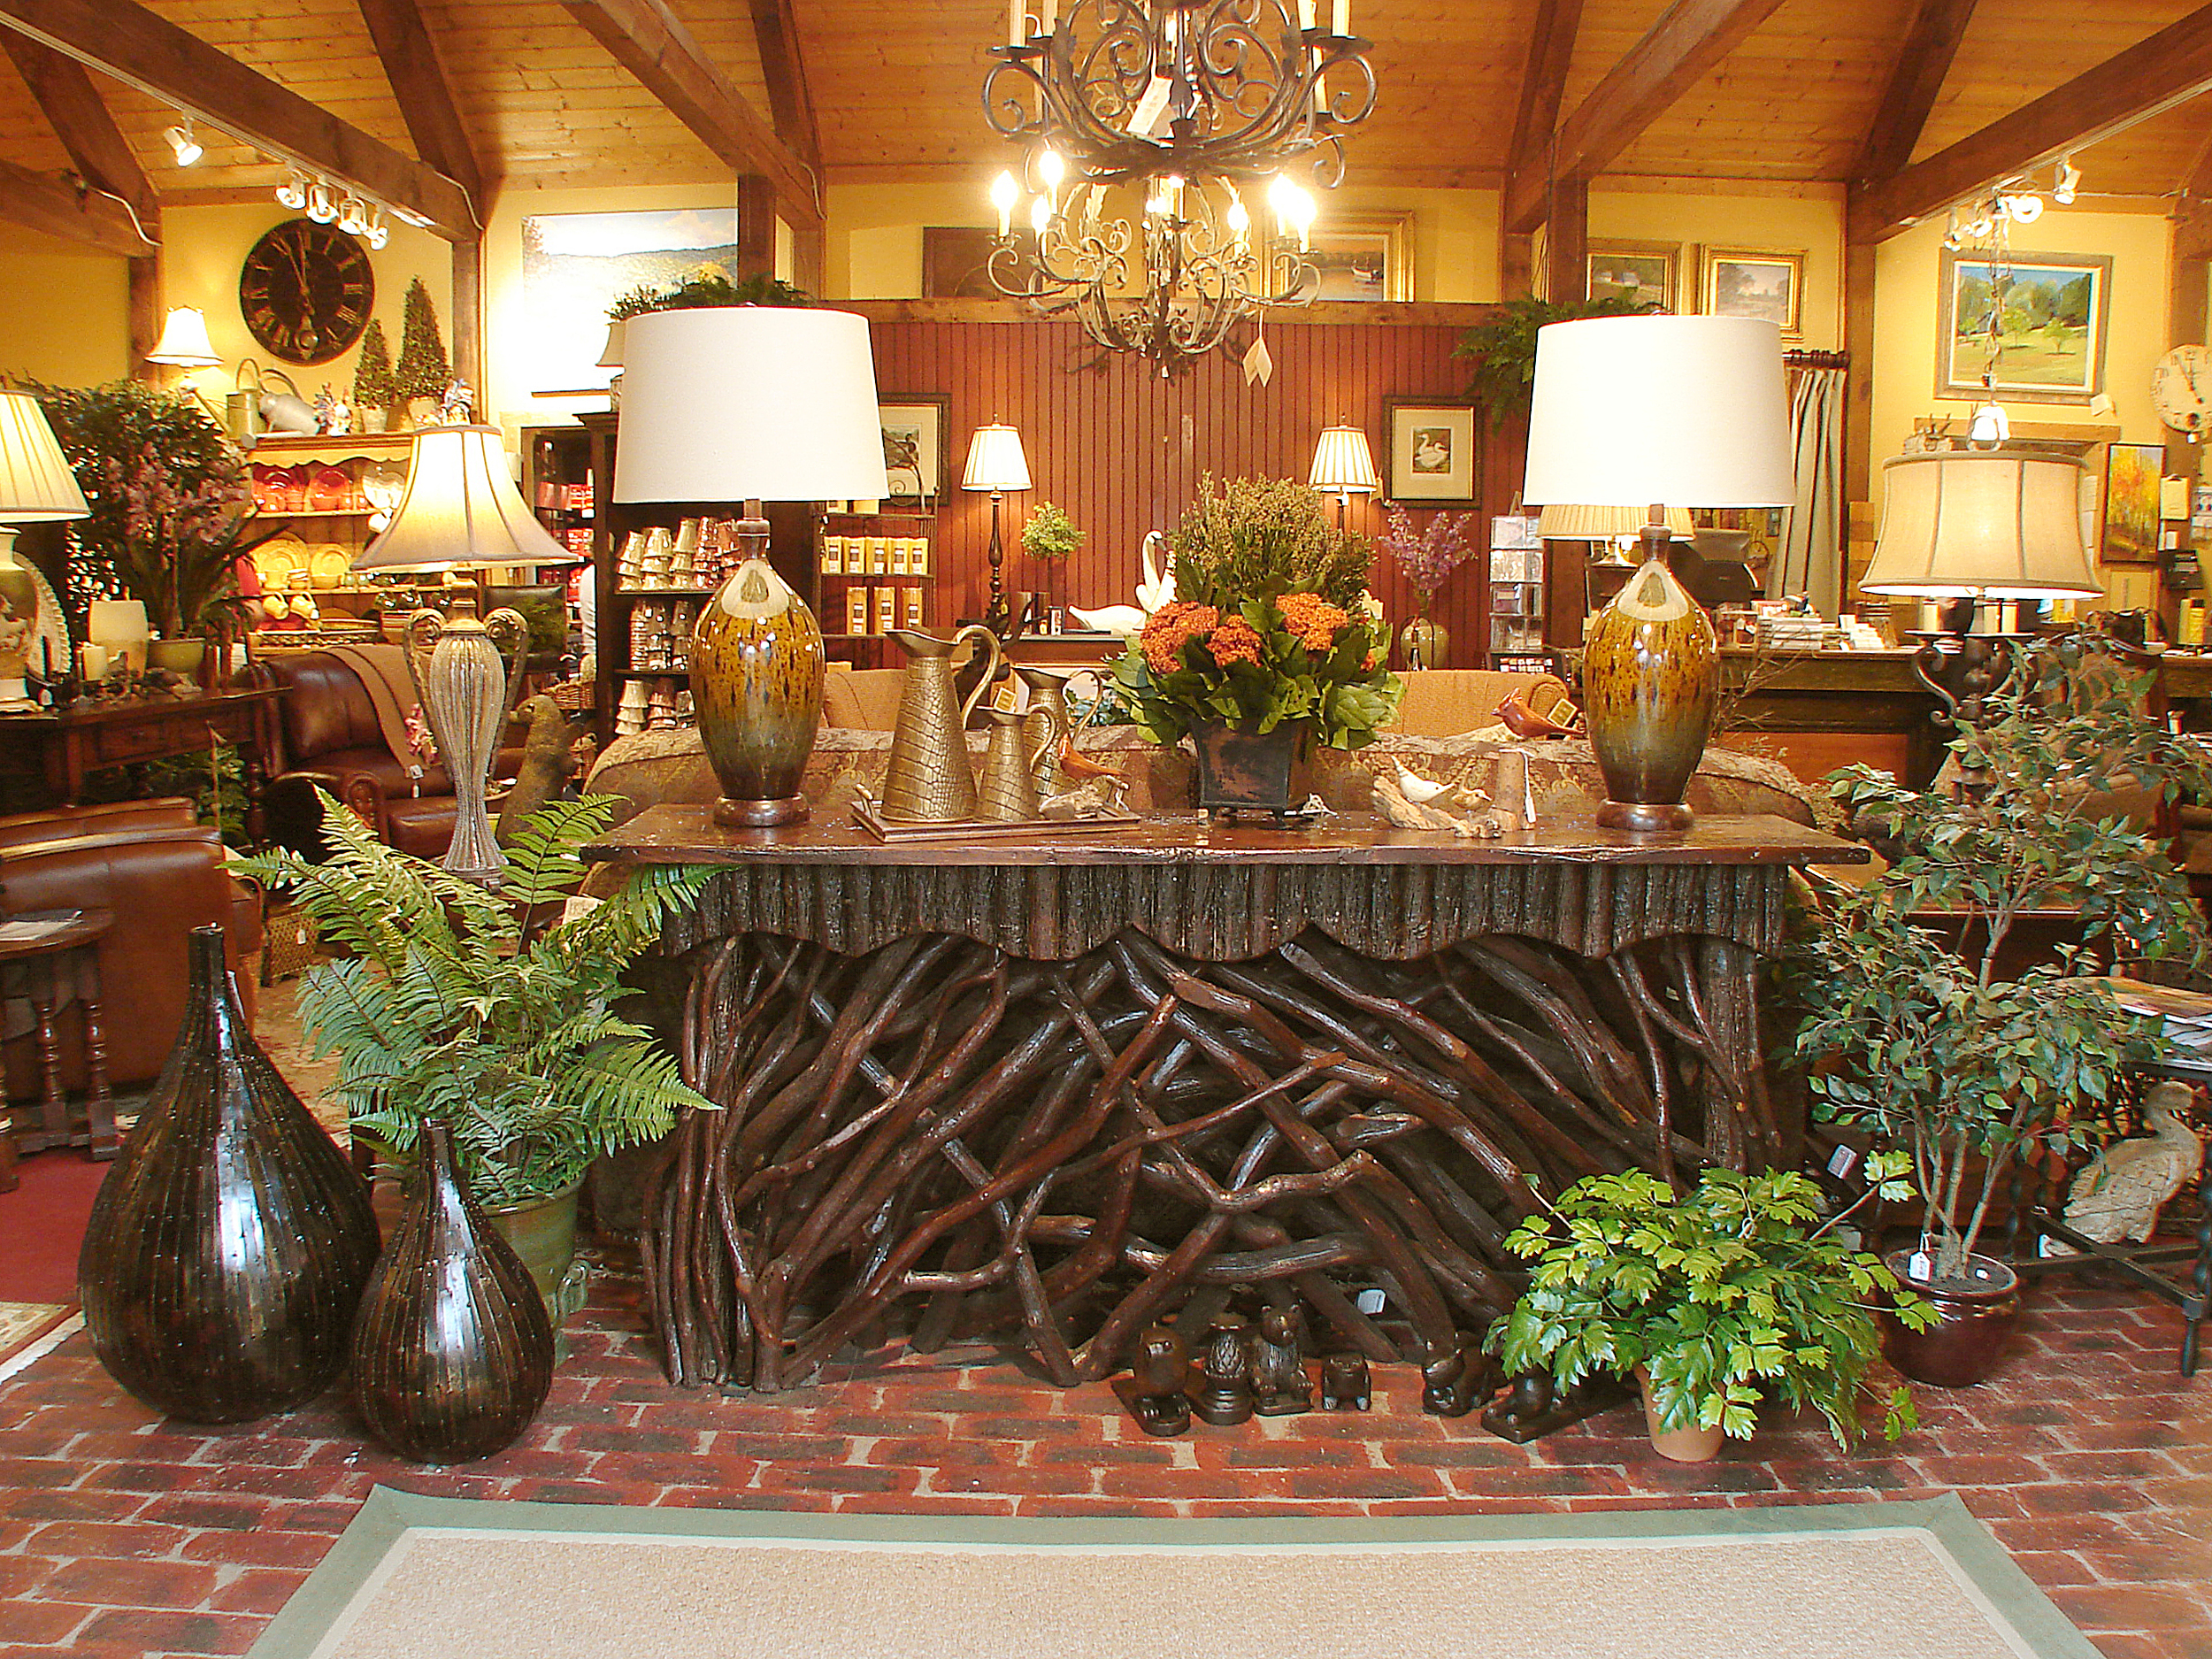 Rustic mountain furnishings are hand crafted with local materials by Tiger Mountain Woodworks, an exclusive line carried only by The Summer House.